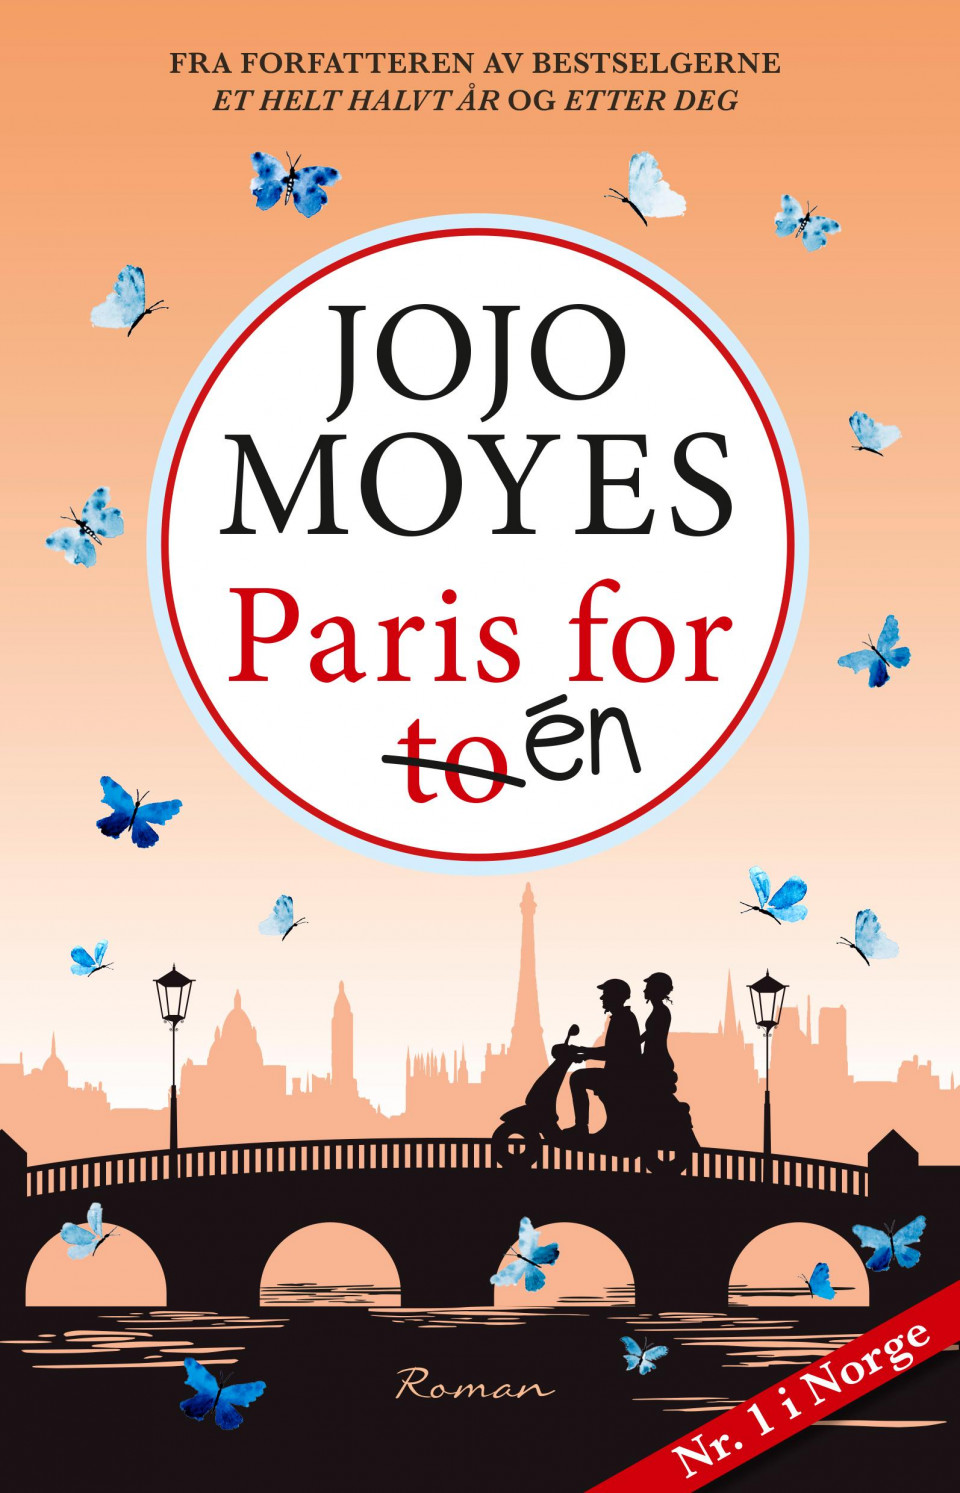 Bilderesultat for paris for en jojo moyes